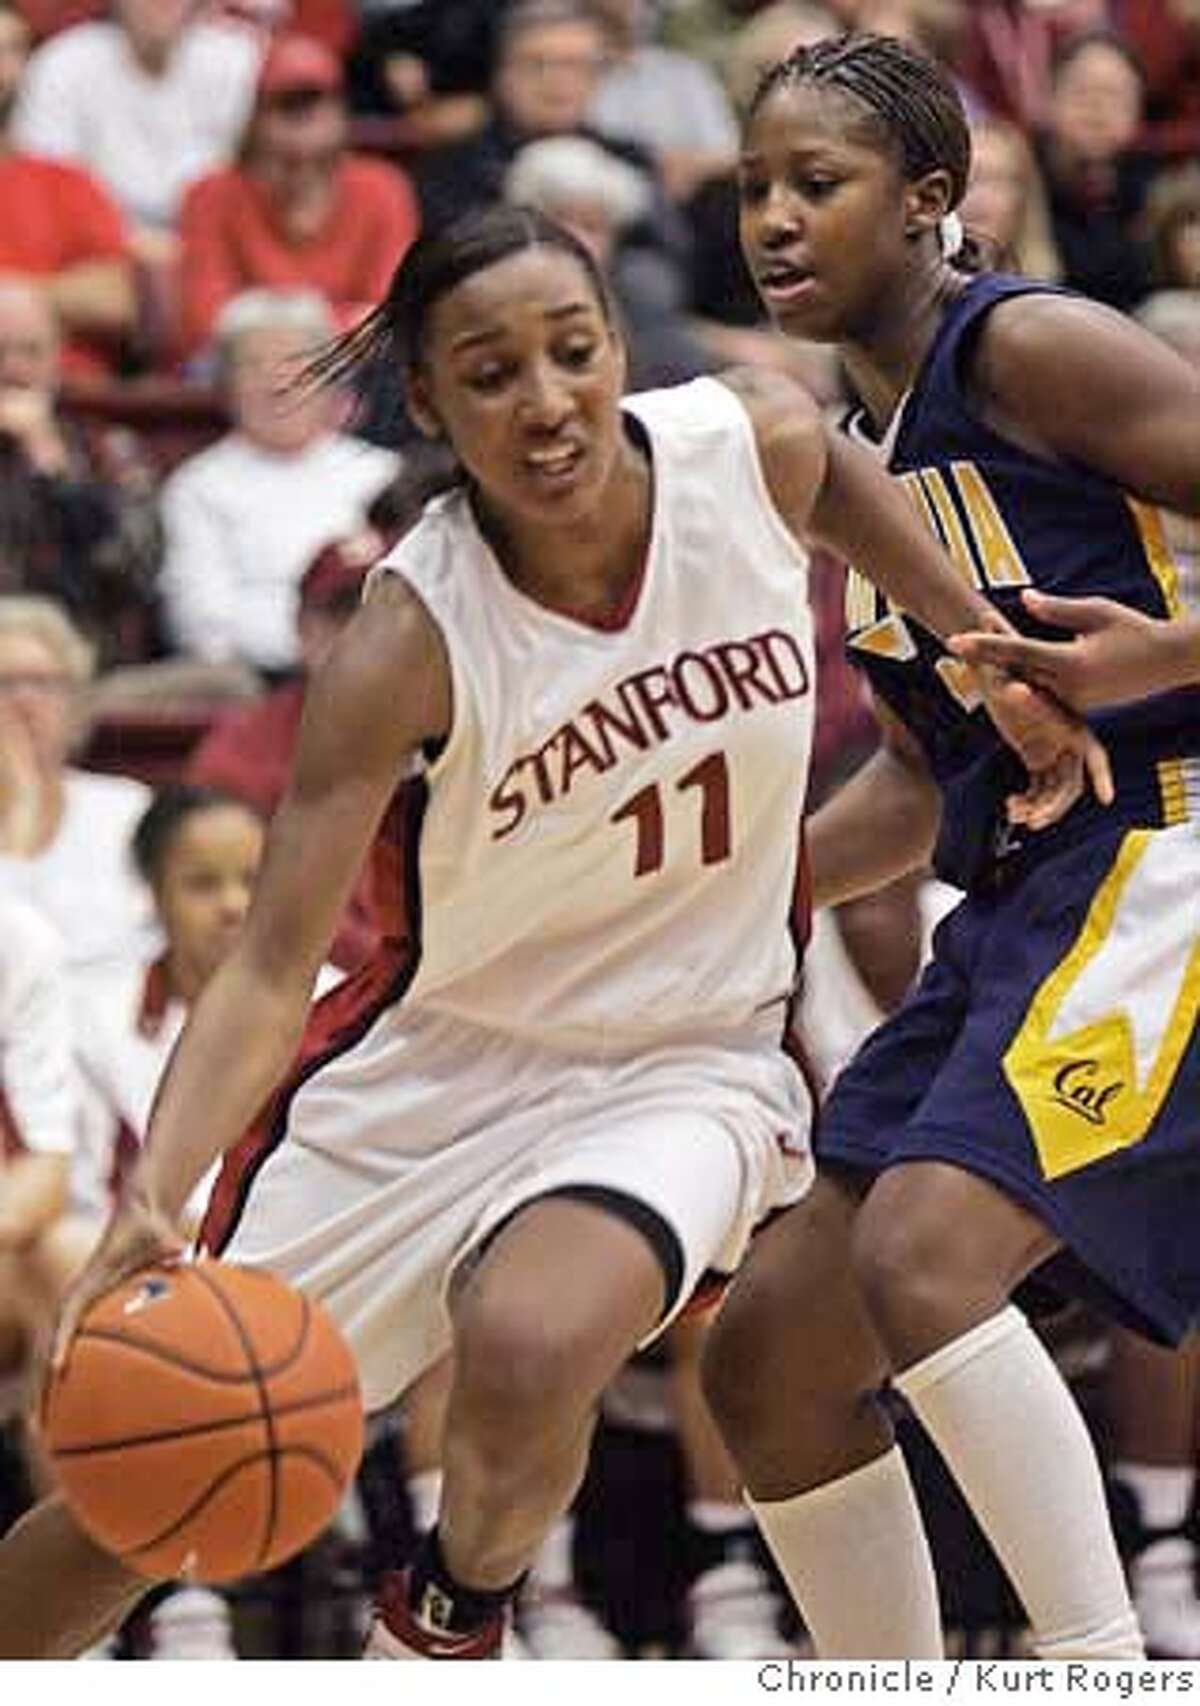 Candice Wiggins drives past cal's Jene Morris during the first half of play. Cal vs Stanford Women at Maples Pavillion. Kurt Rogers PALO ALTO SFC The Chronicle CALSTANFORDWOMEN_00547_kr.JPG Ran on: 01-15-2006 Brooke Smith, who had 22 points for Stanford, is double-teamed by Krista Foster (15) and Jene{minute} Morris. Ran on: 01-15-2006 Brooke Smith, who had 22 points for Stanford, is double-teamed by Krista Foster (15) and Jene{minute} Morris. Ran on: 01-15-2006 Brooke Smith, who had 22 points for Stanford, is double-teamed by Krista Foster (15) and Jene{minute} Morris. MANDATORY CREDIT FOR PHOTOG AND SF CHRONICLE/NO SALES-MAGS OUT